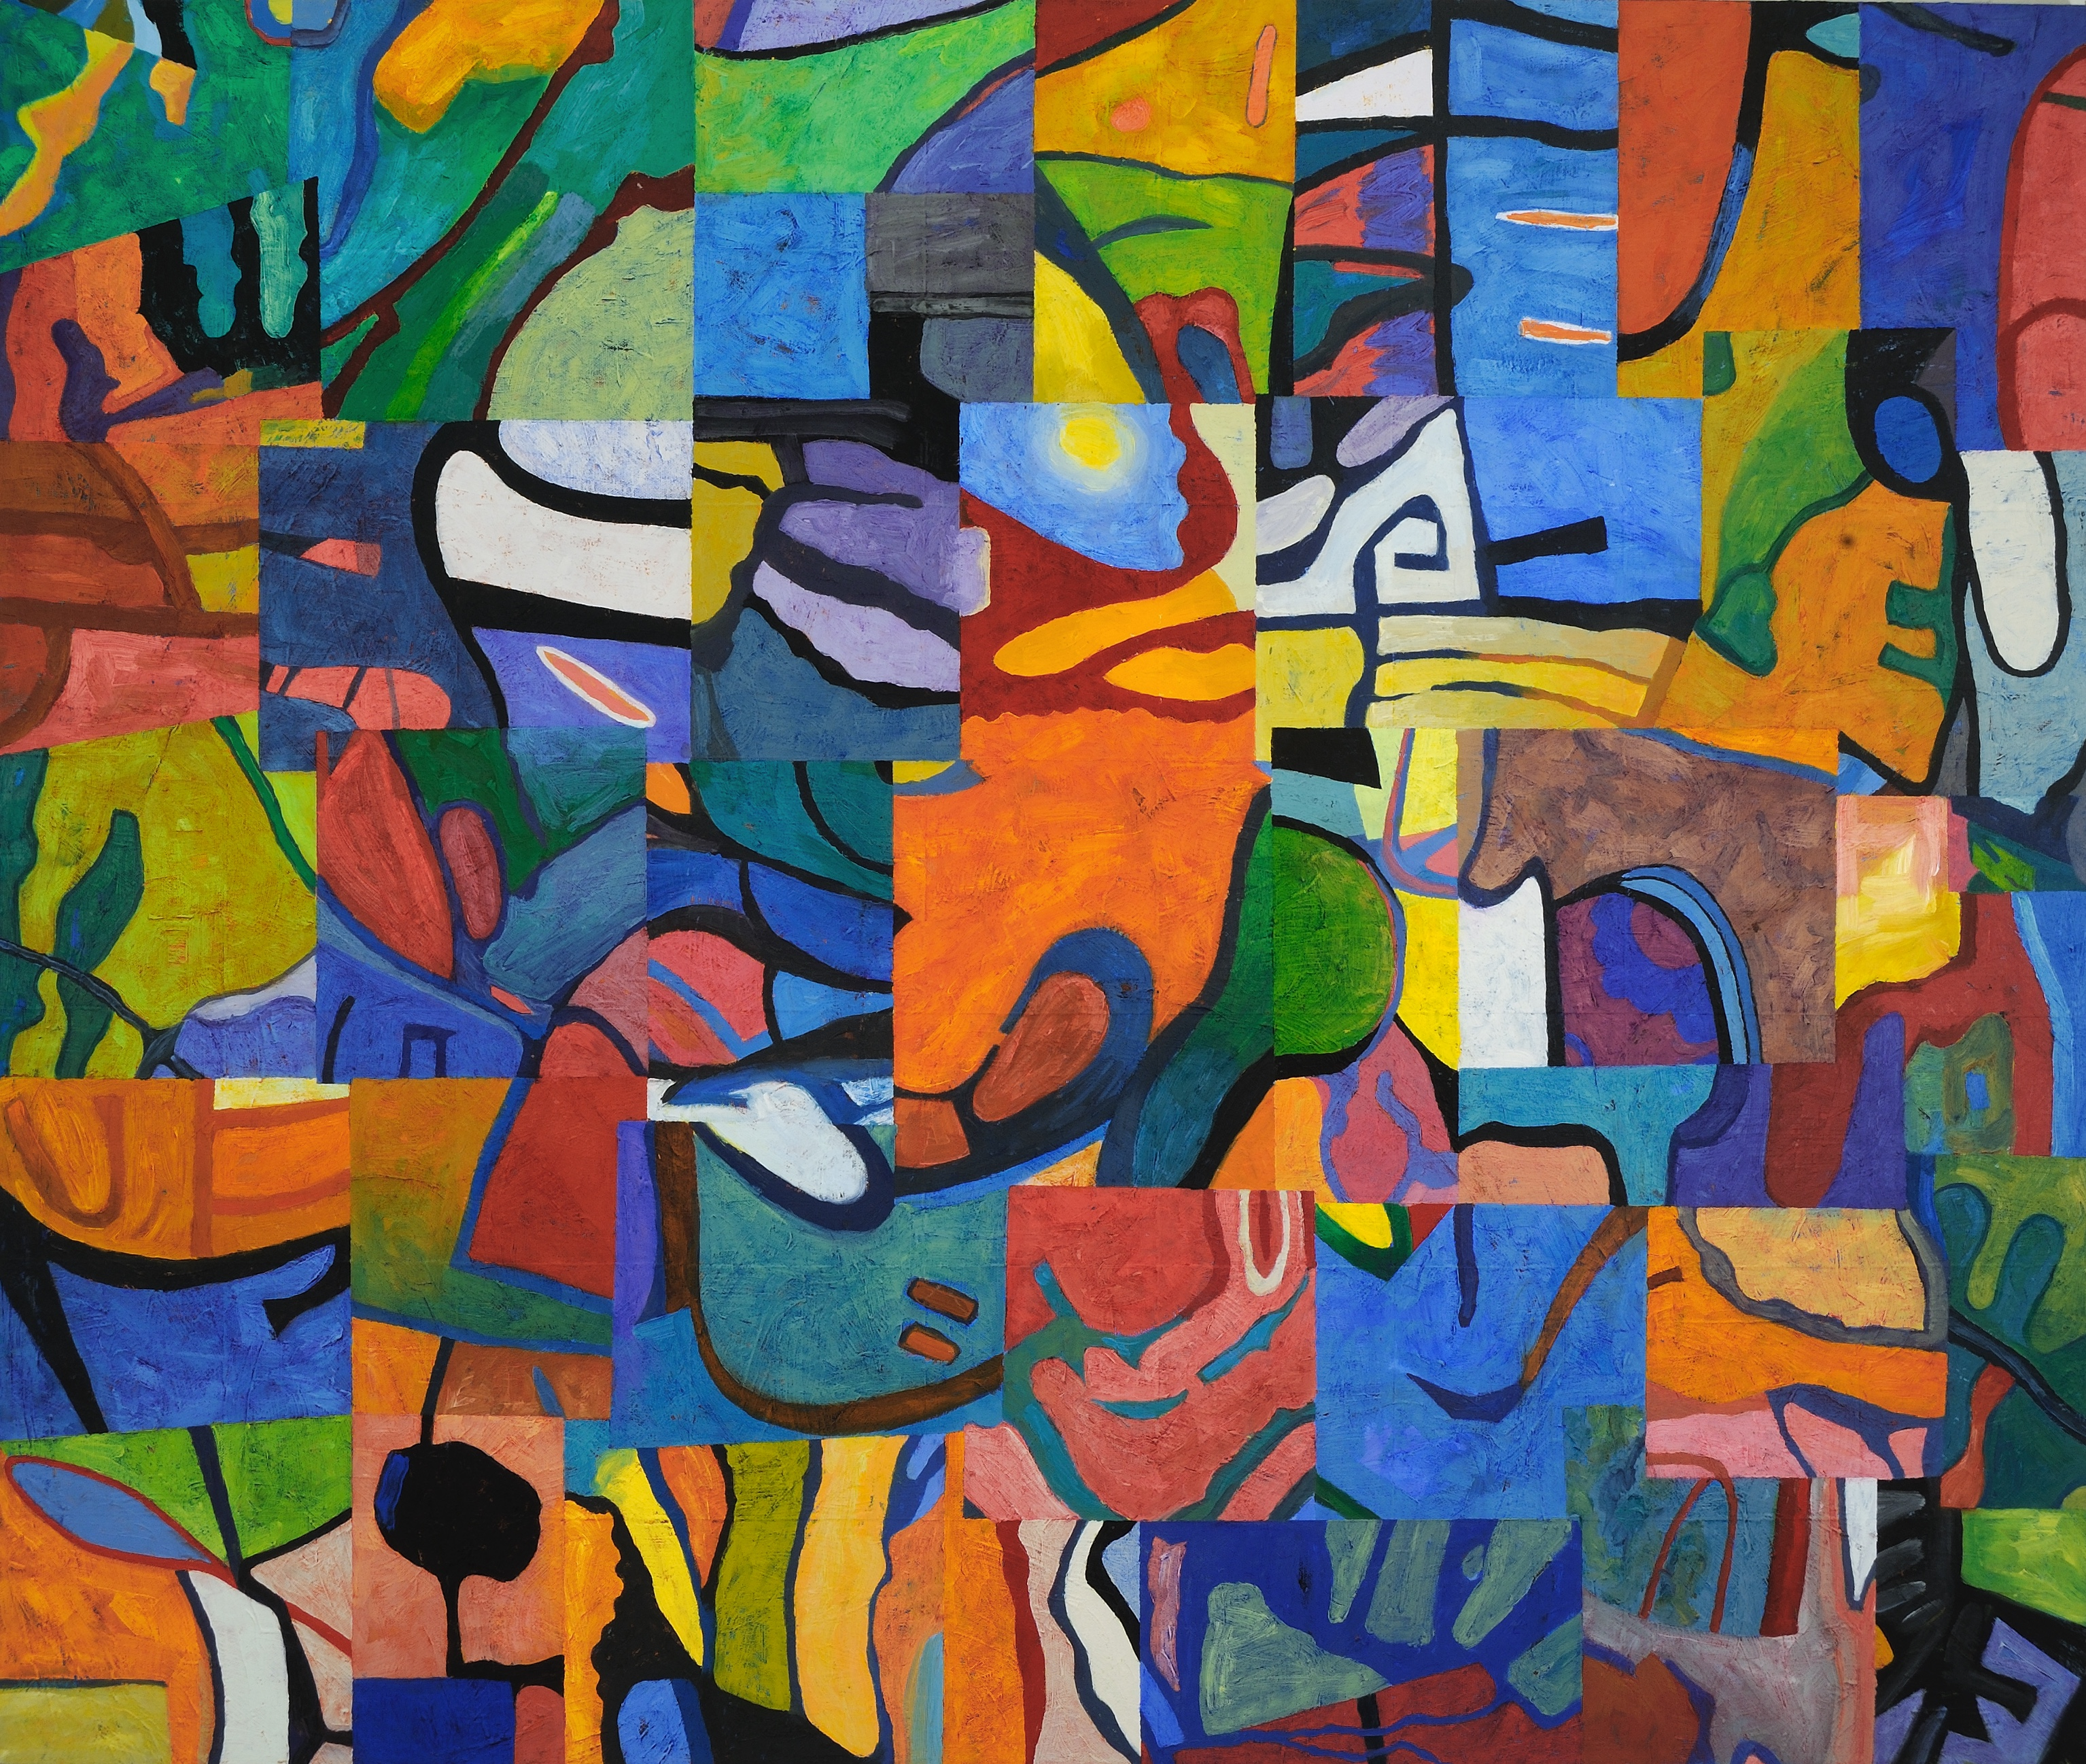 Bright shapes in a quilt-like composition